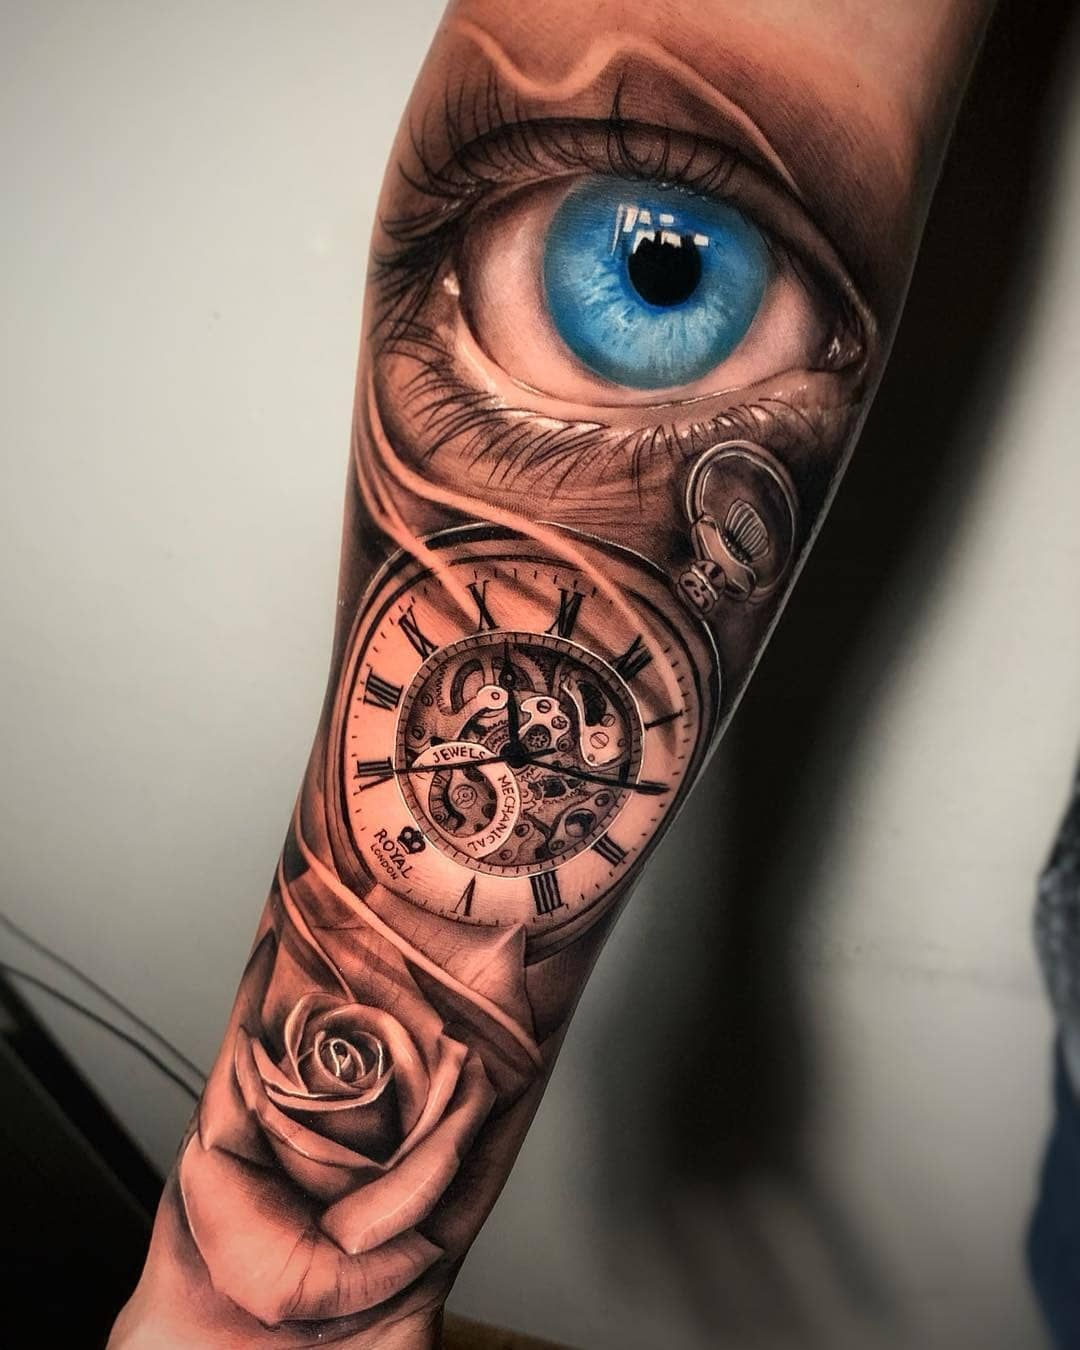 Time Hand Tattoos for Men in 2020 Hand tattoos for guys